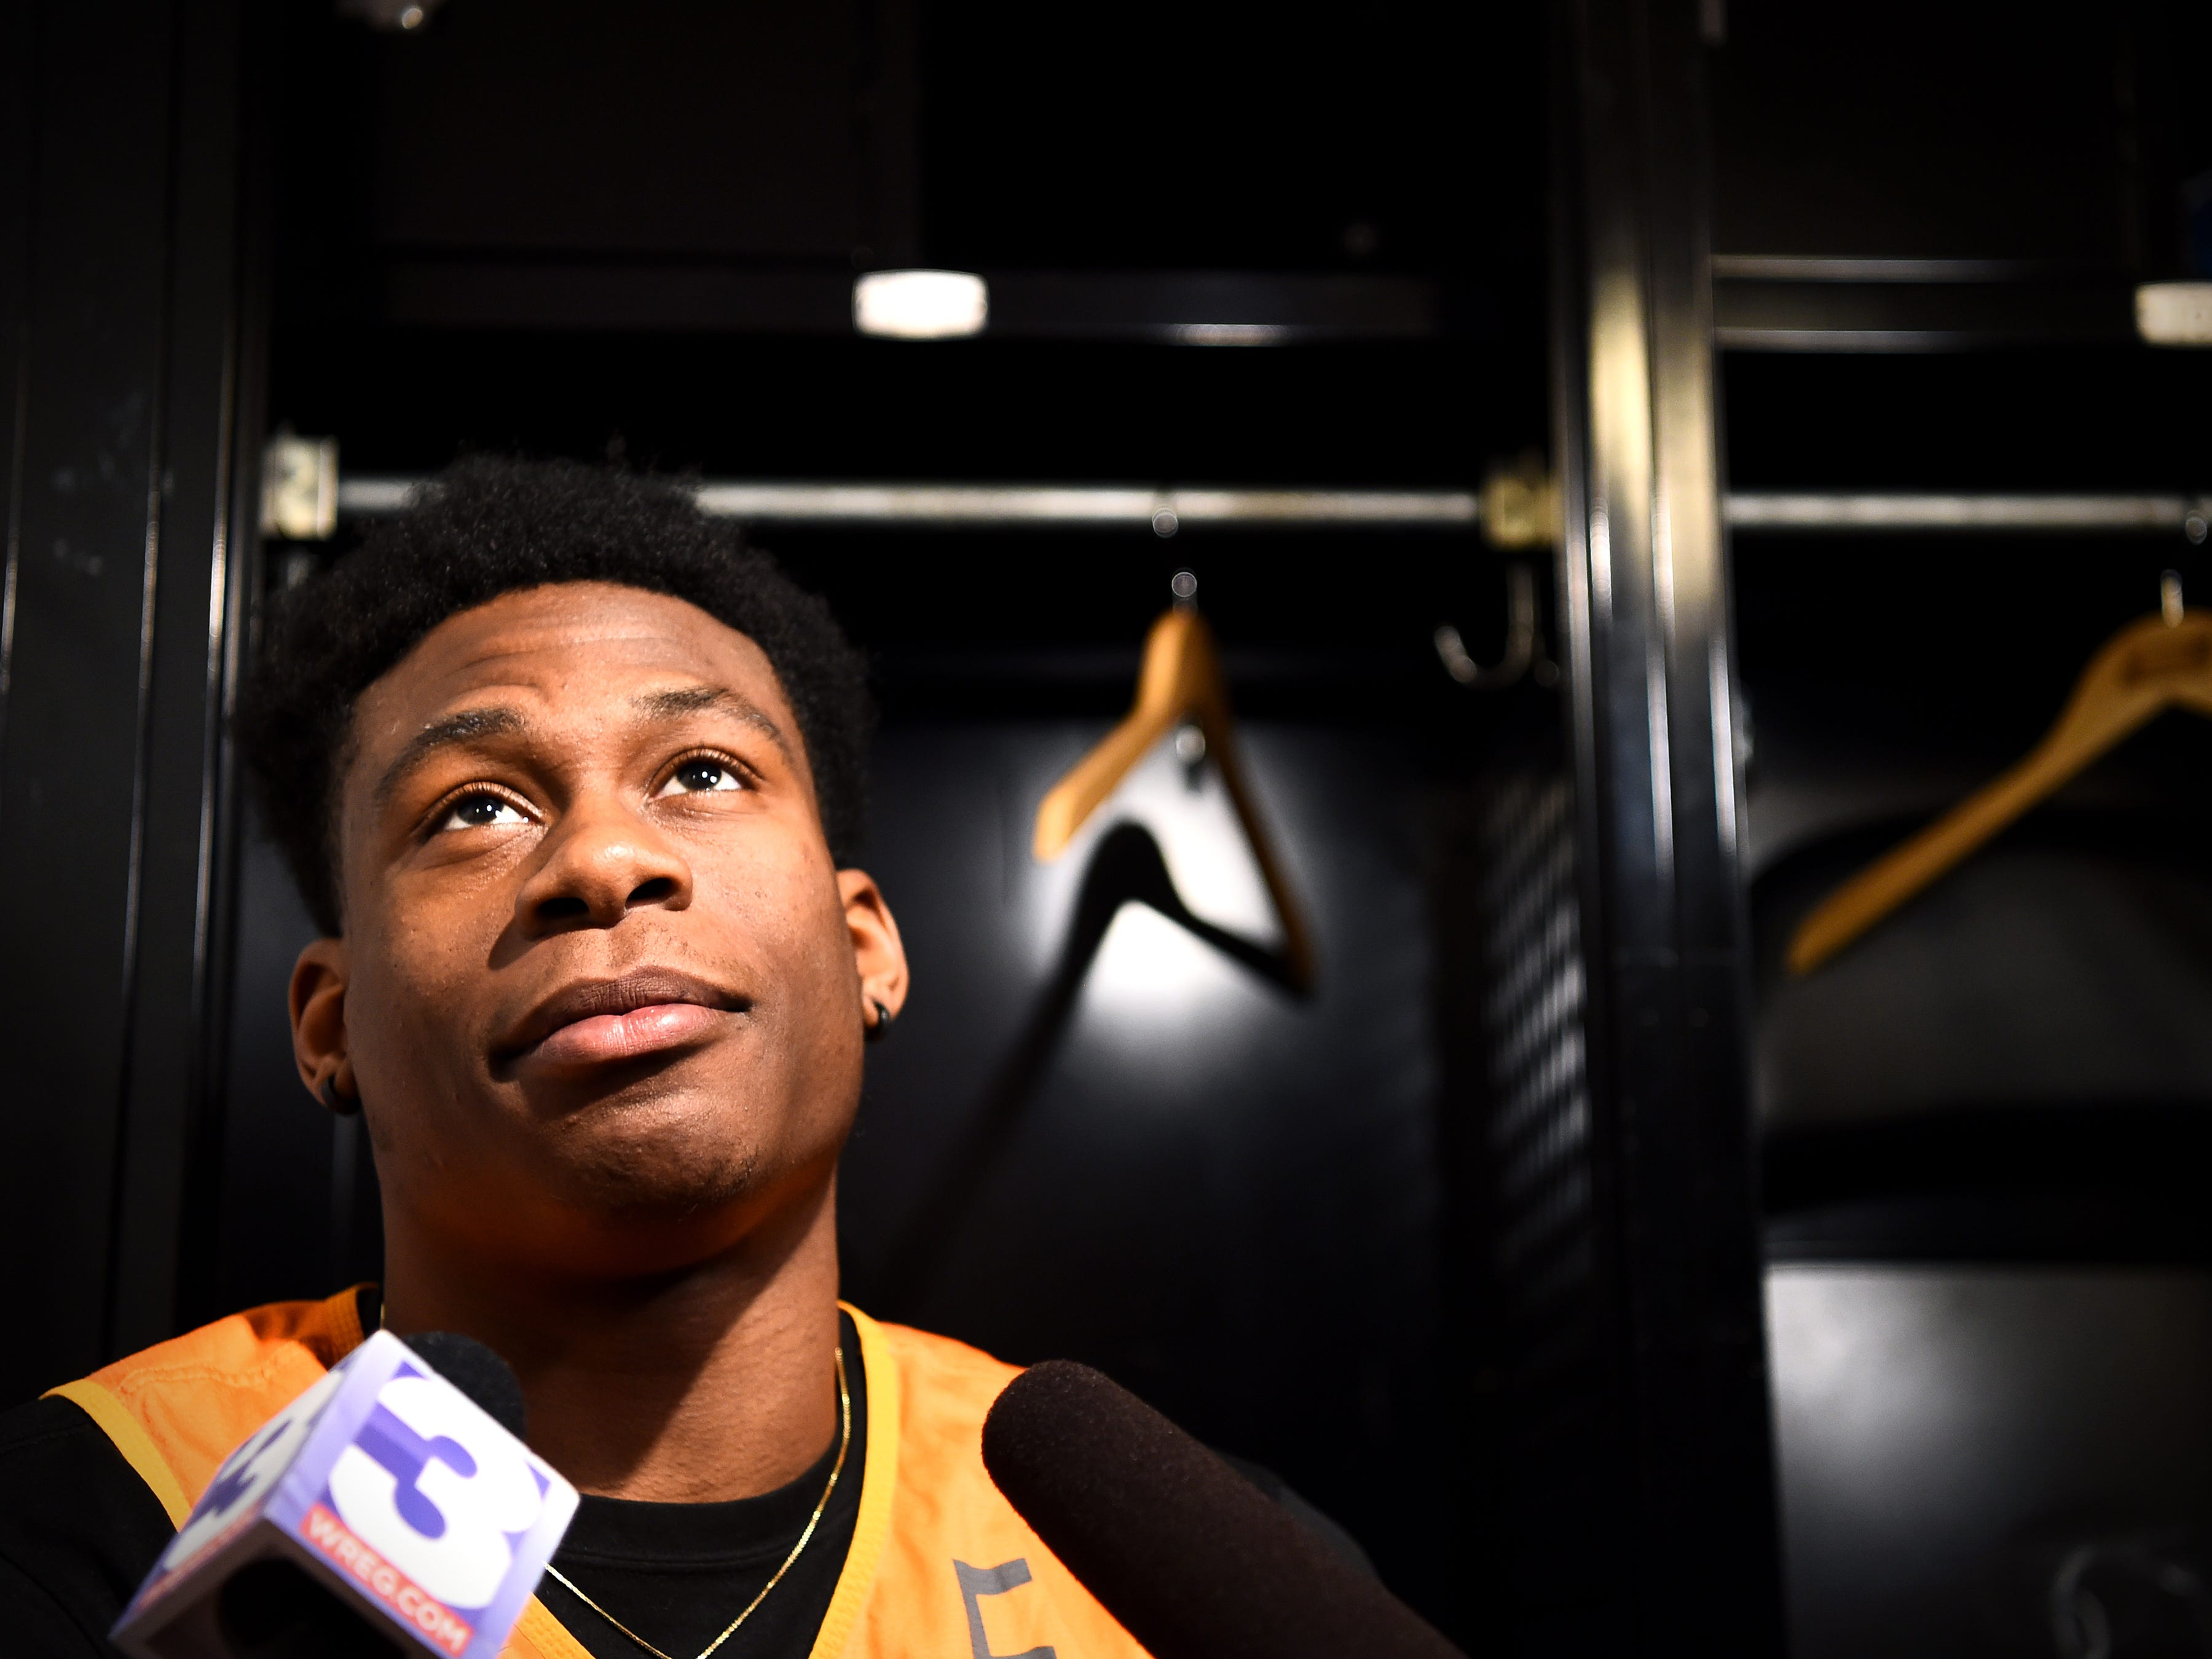 Tennessee guard Admiral Schofield (5) speaks with members of the media on Saturday, March 23, 2019, before the Tennessee Volunteers and Iowa Hawkeyes compete against one another in the second round of the NCAA Tournament held at Nationwide Arena in Columbus, Ohio, on Sunday, March 24, 2019.